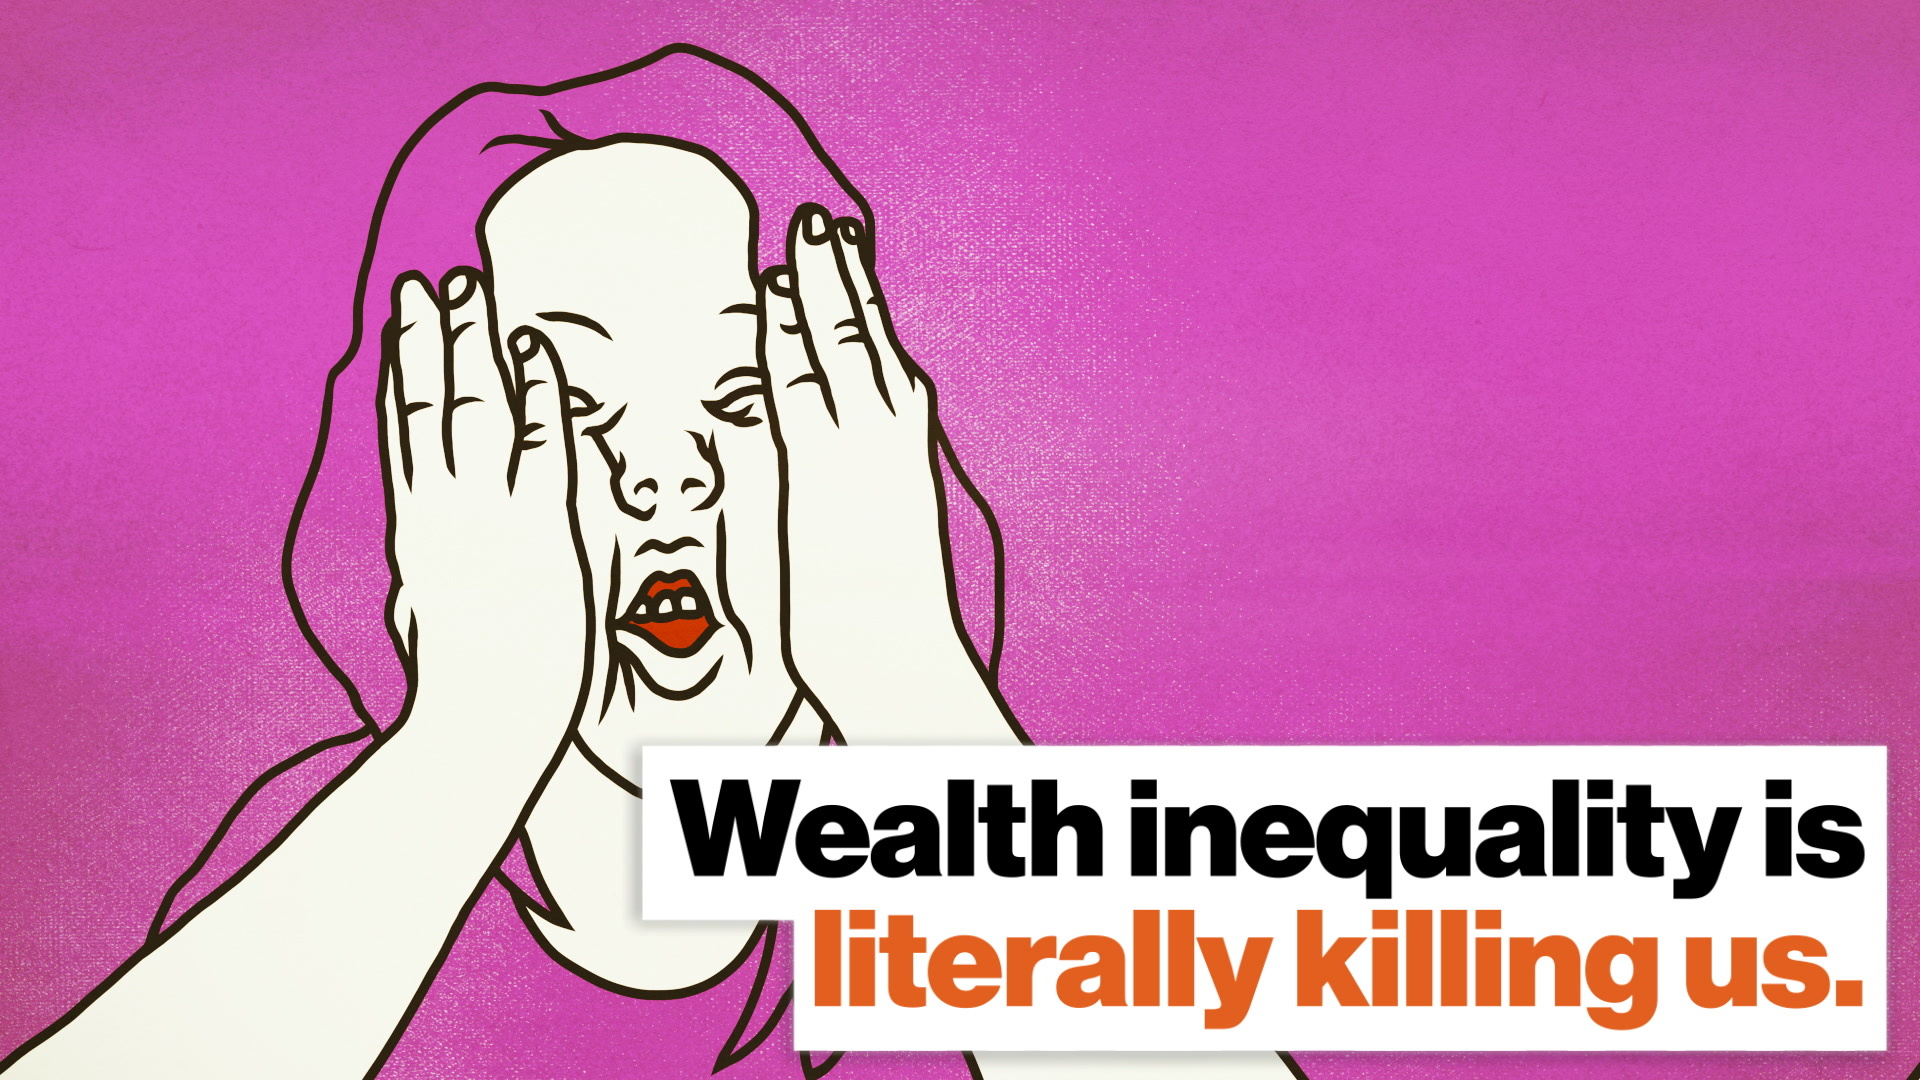 Wealth inequality is literally killing us. The economy should work for everyone.